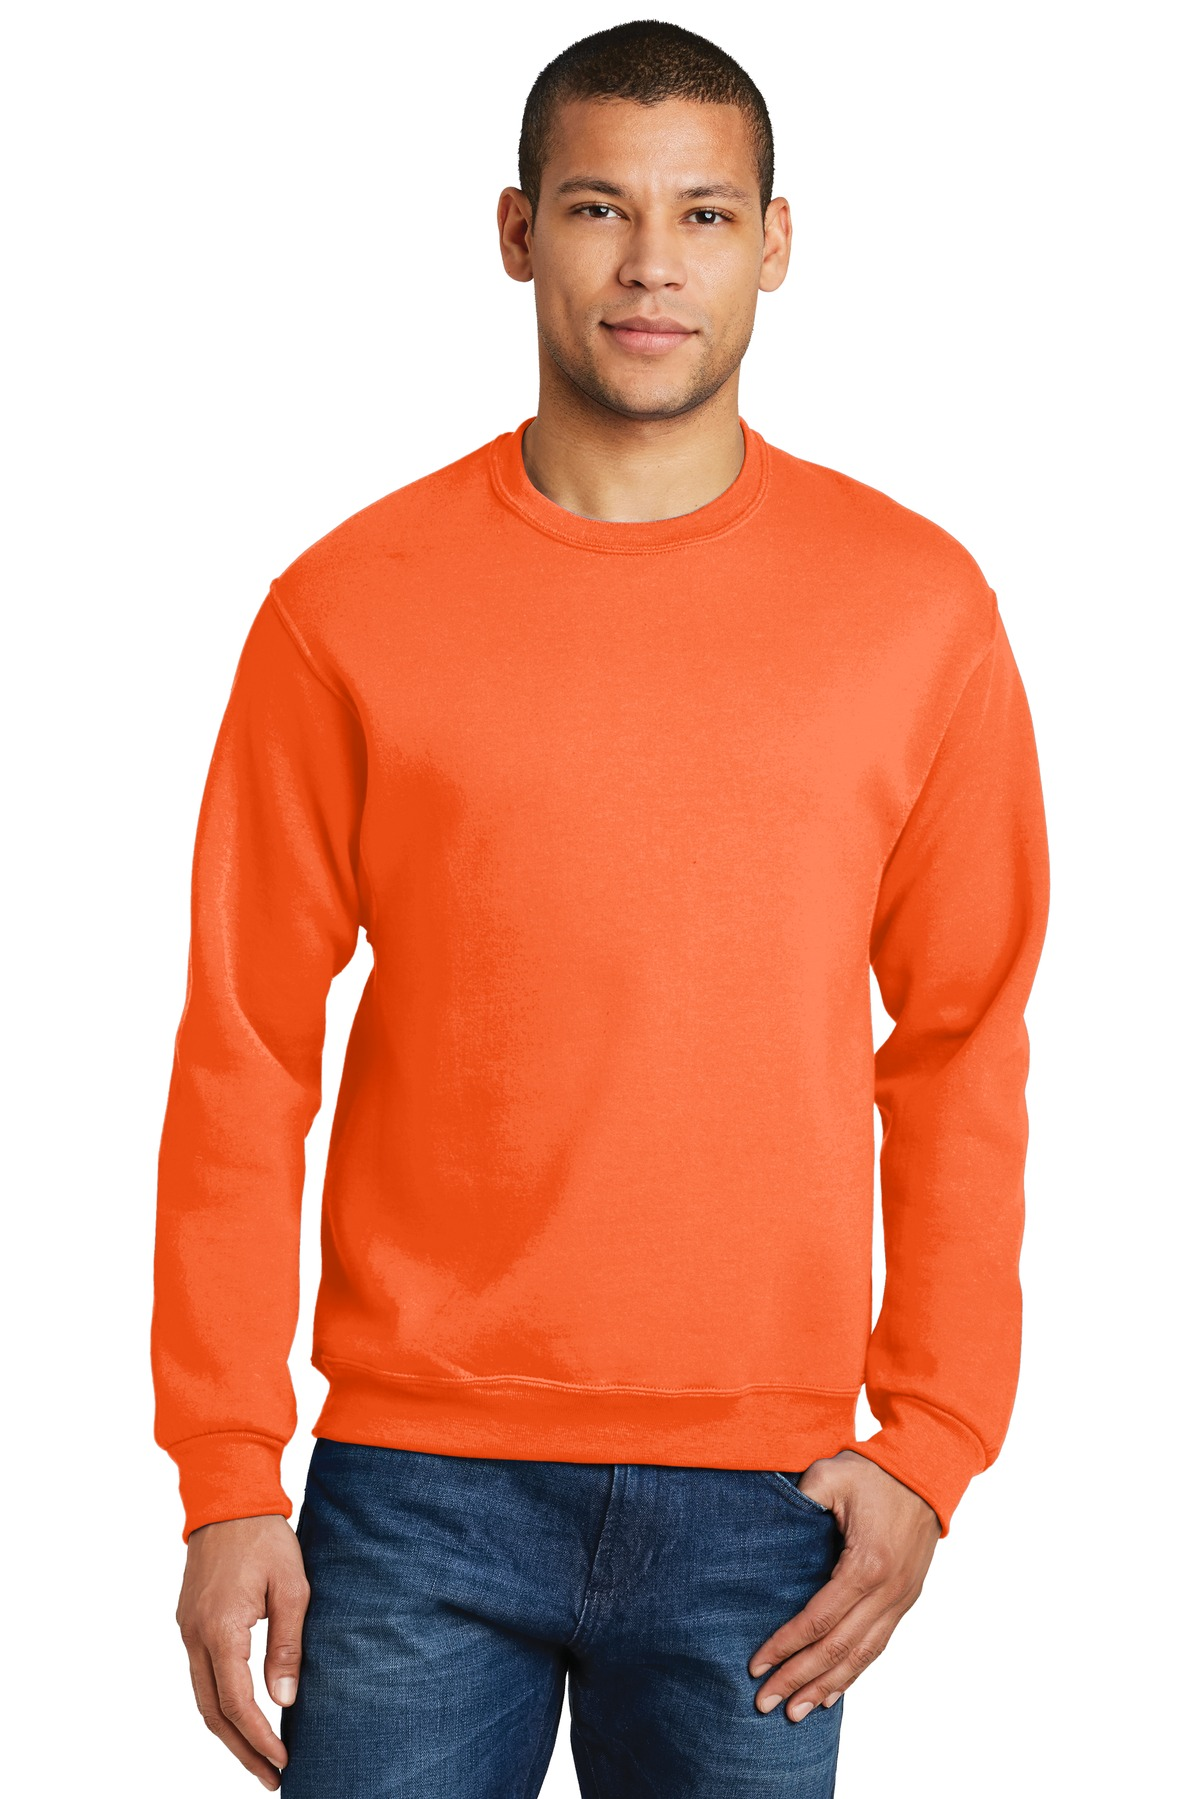 JERZEES ®  - NuBlend ®  Crewneck Sweatshirt.  562M - Safety Orange